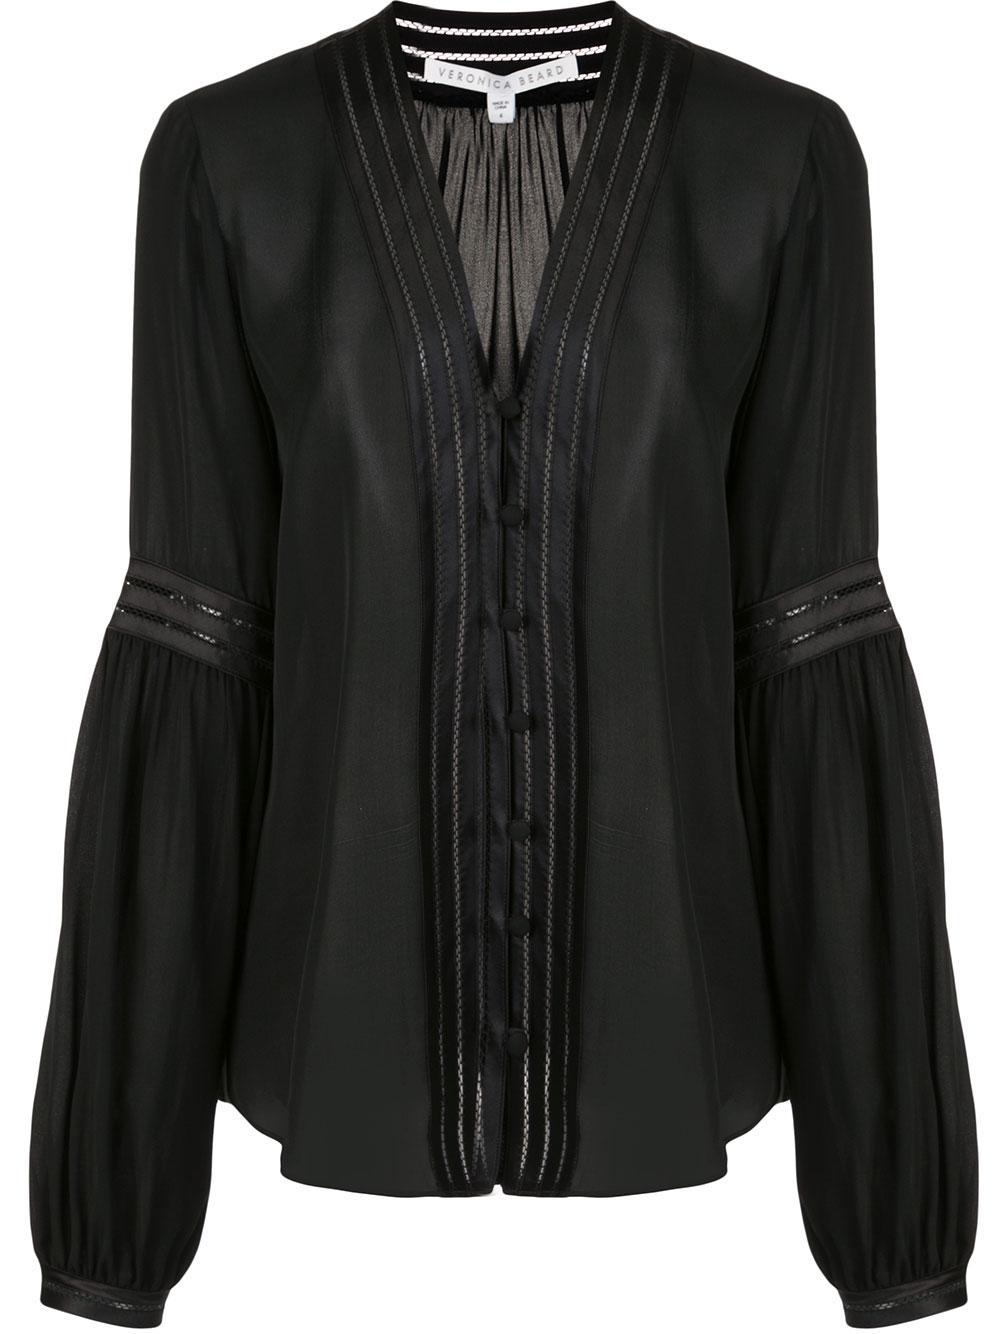 Yumi Long Sleeve Button Up V- Neck Blouse